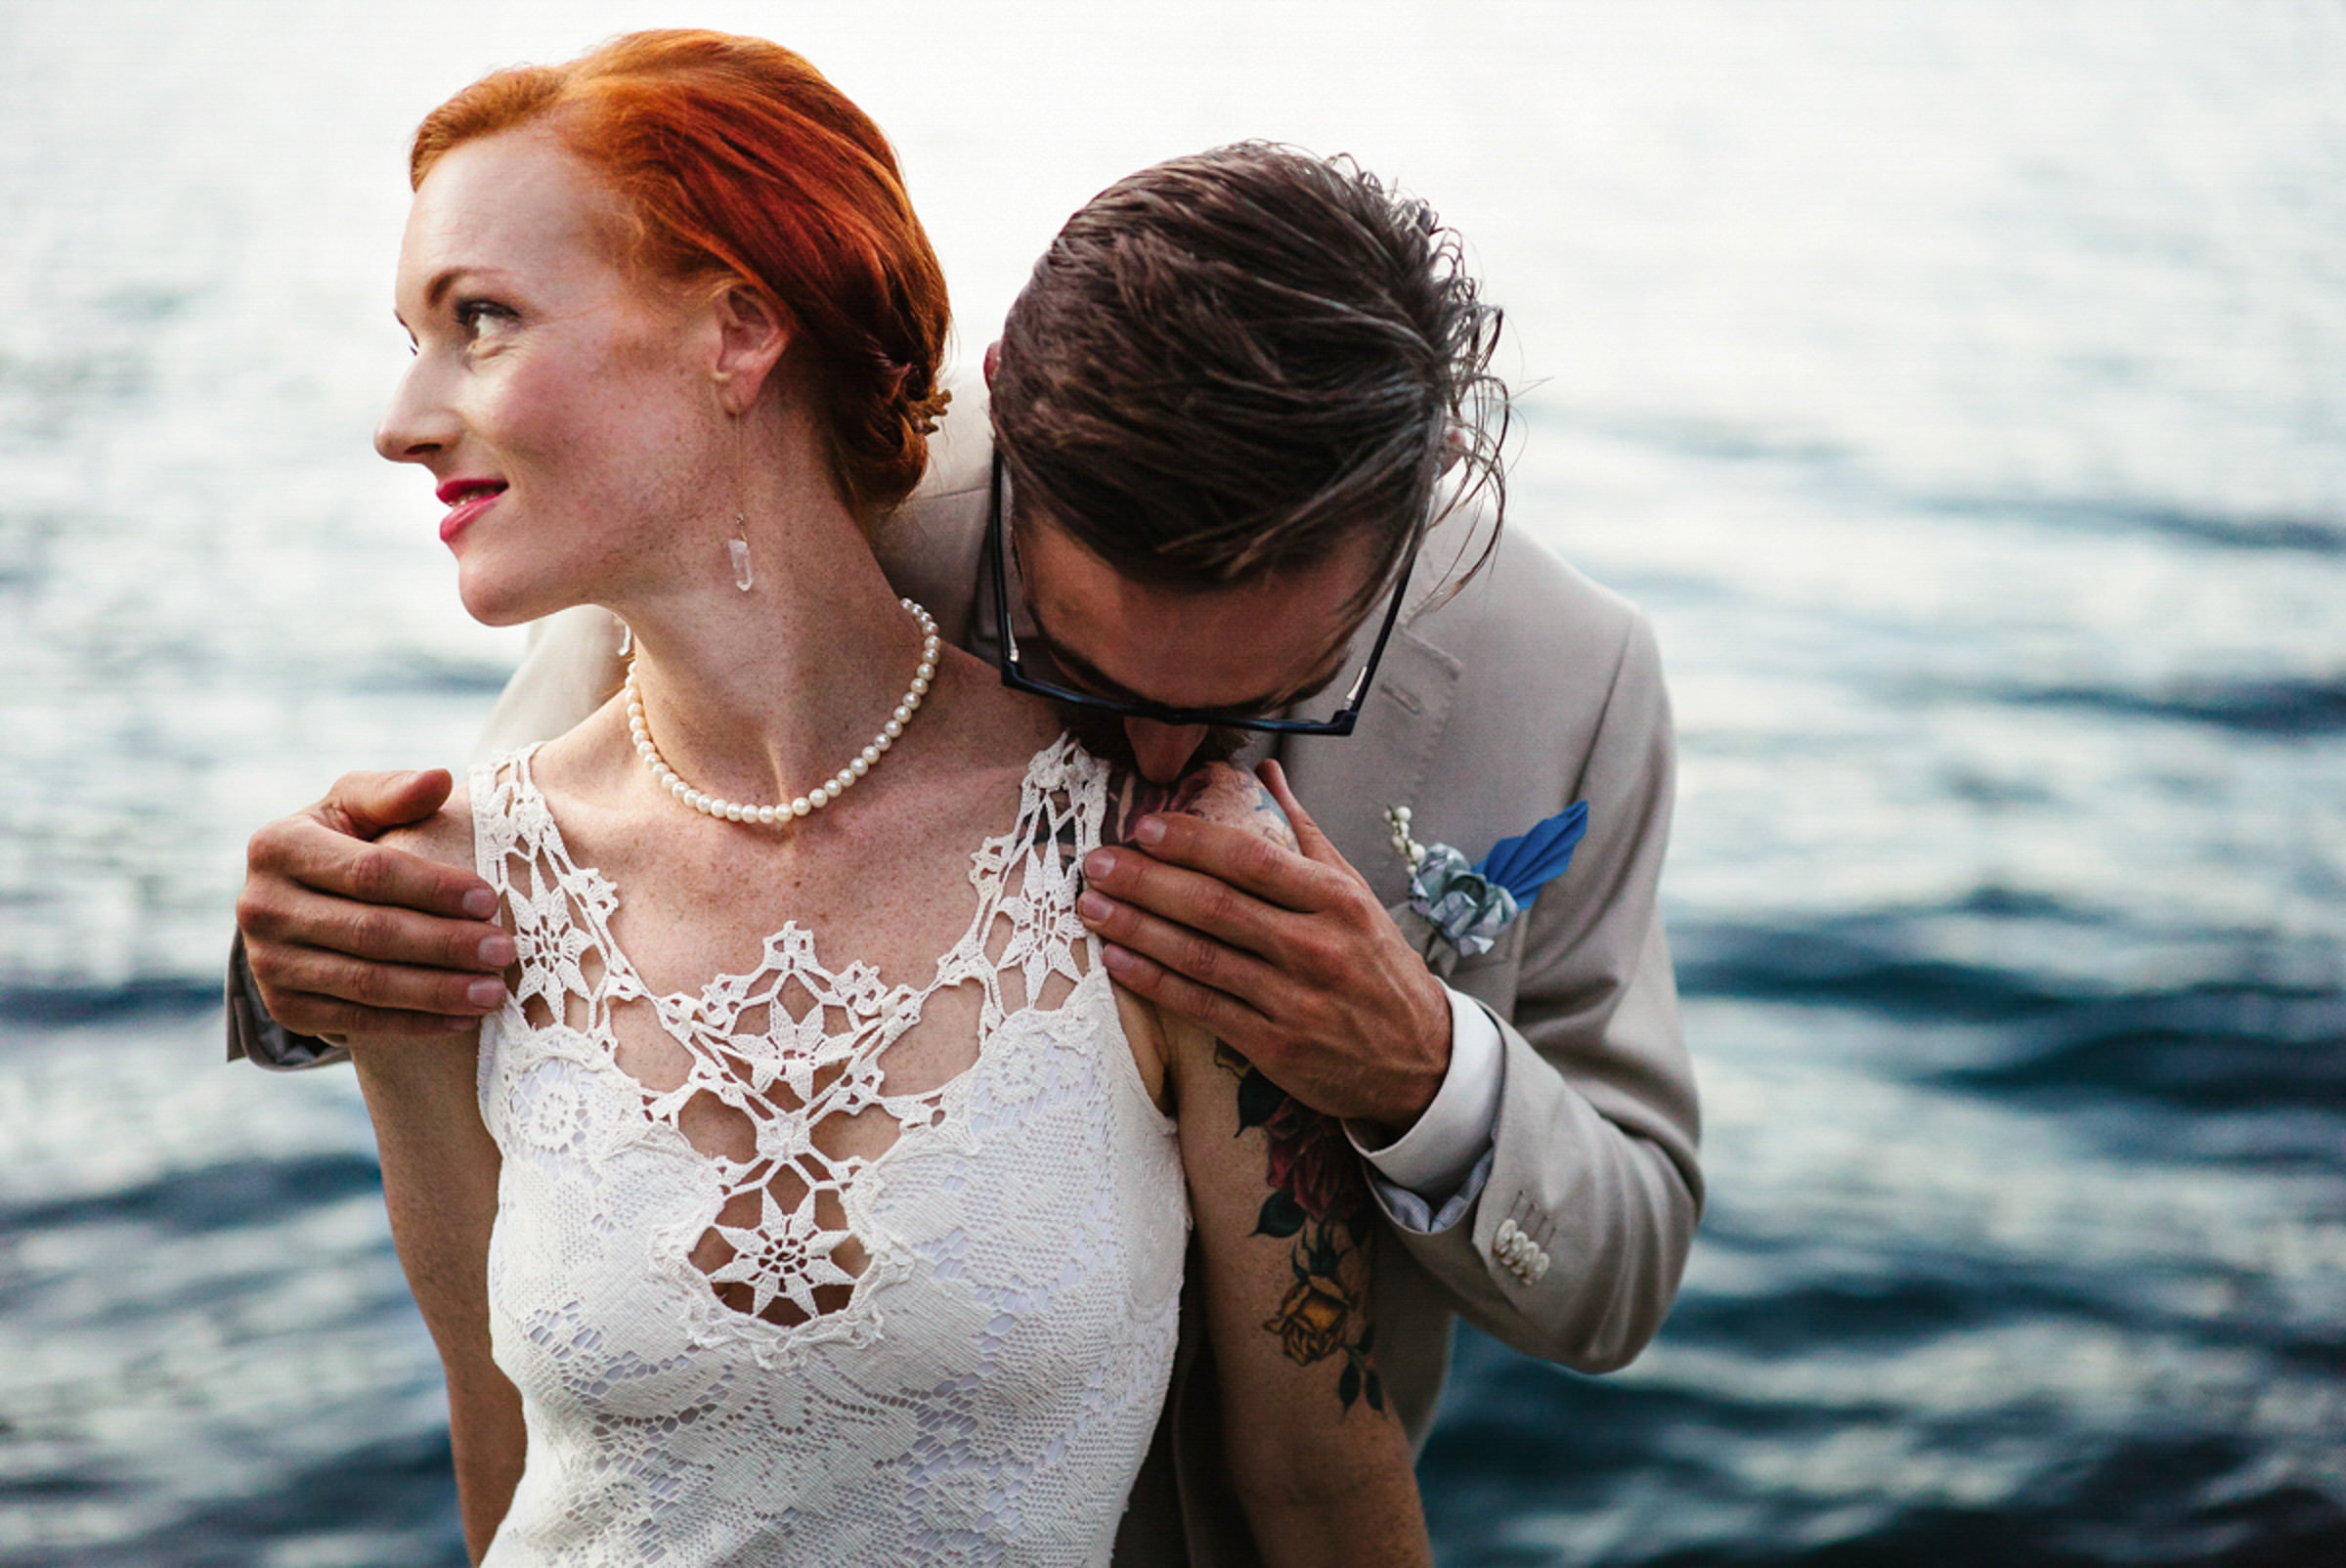 Bride wearing lace applique dress on beach with groom - photo by Sasha Reiko